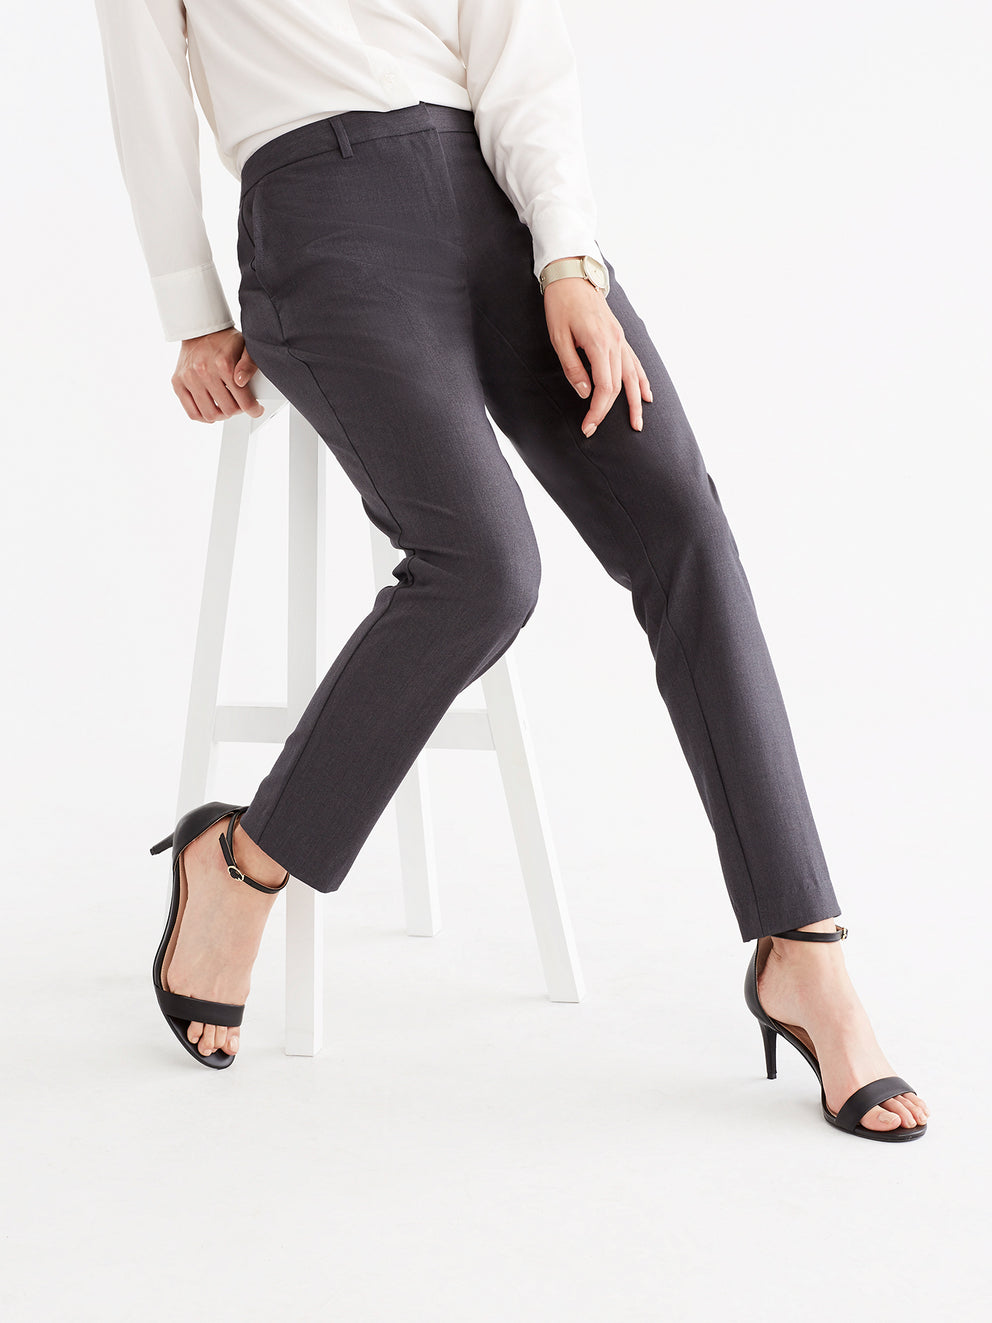 The Jones New York Grace Full-Length Pant in color Charcoal - Image Position 2